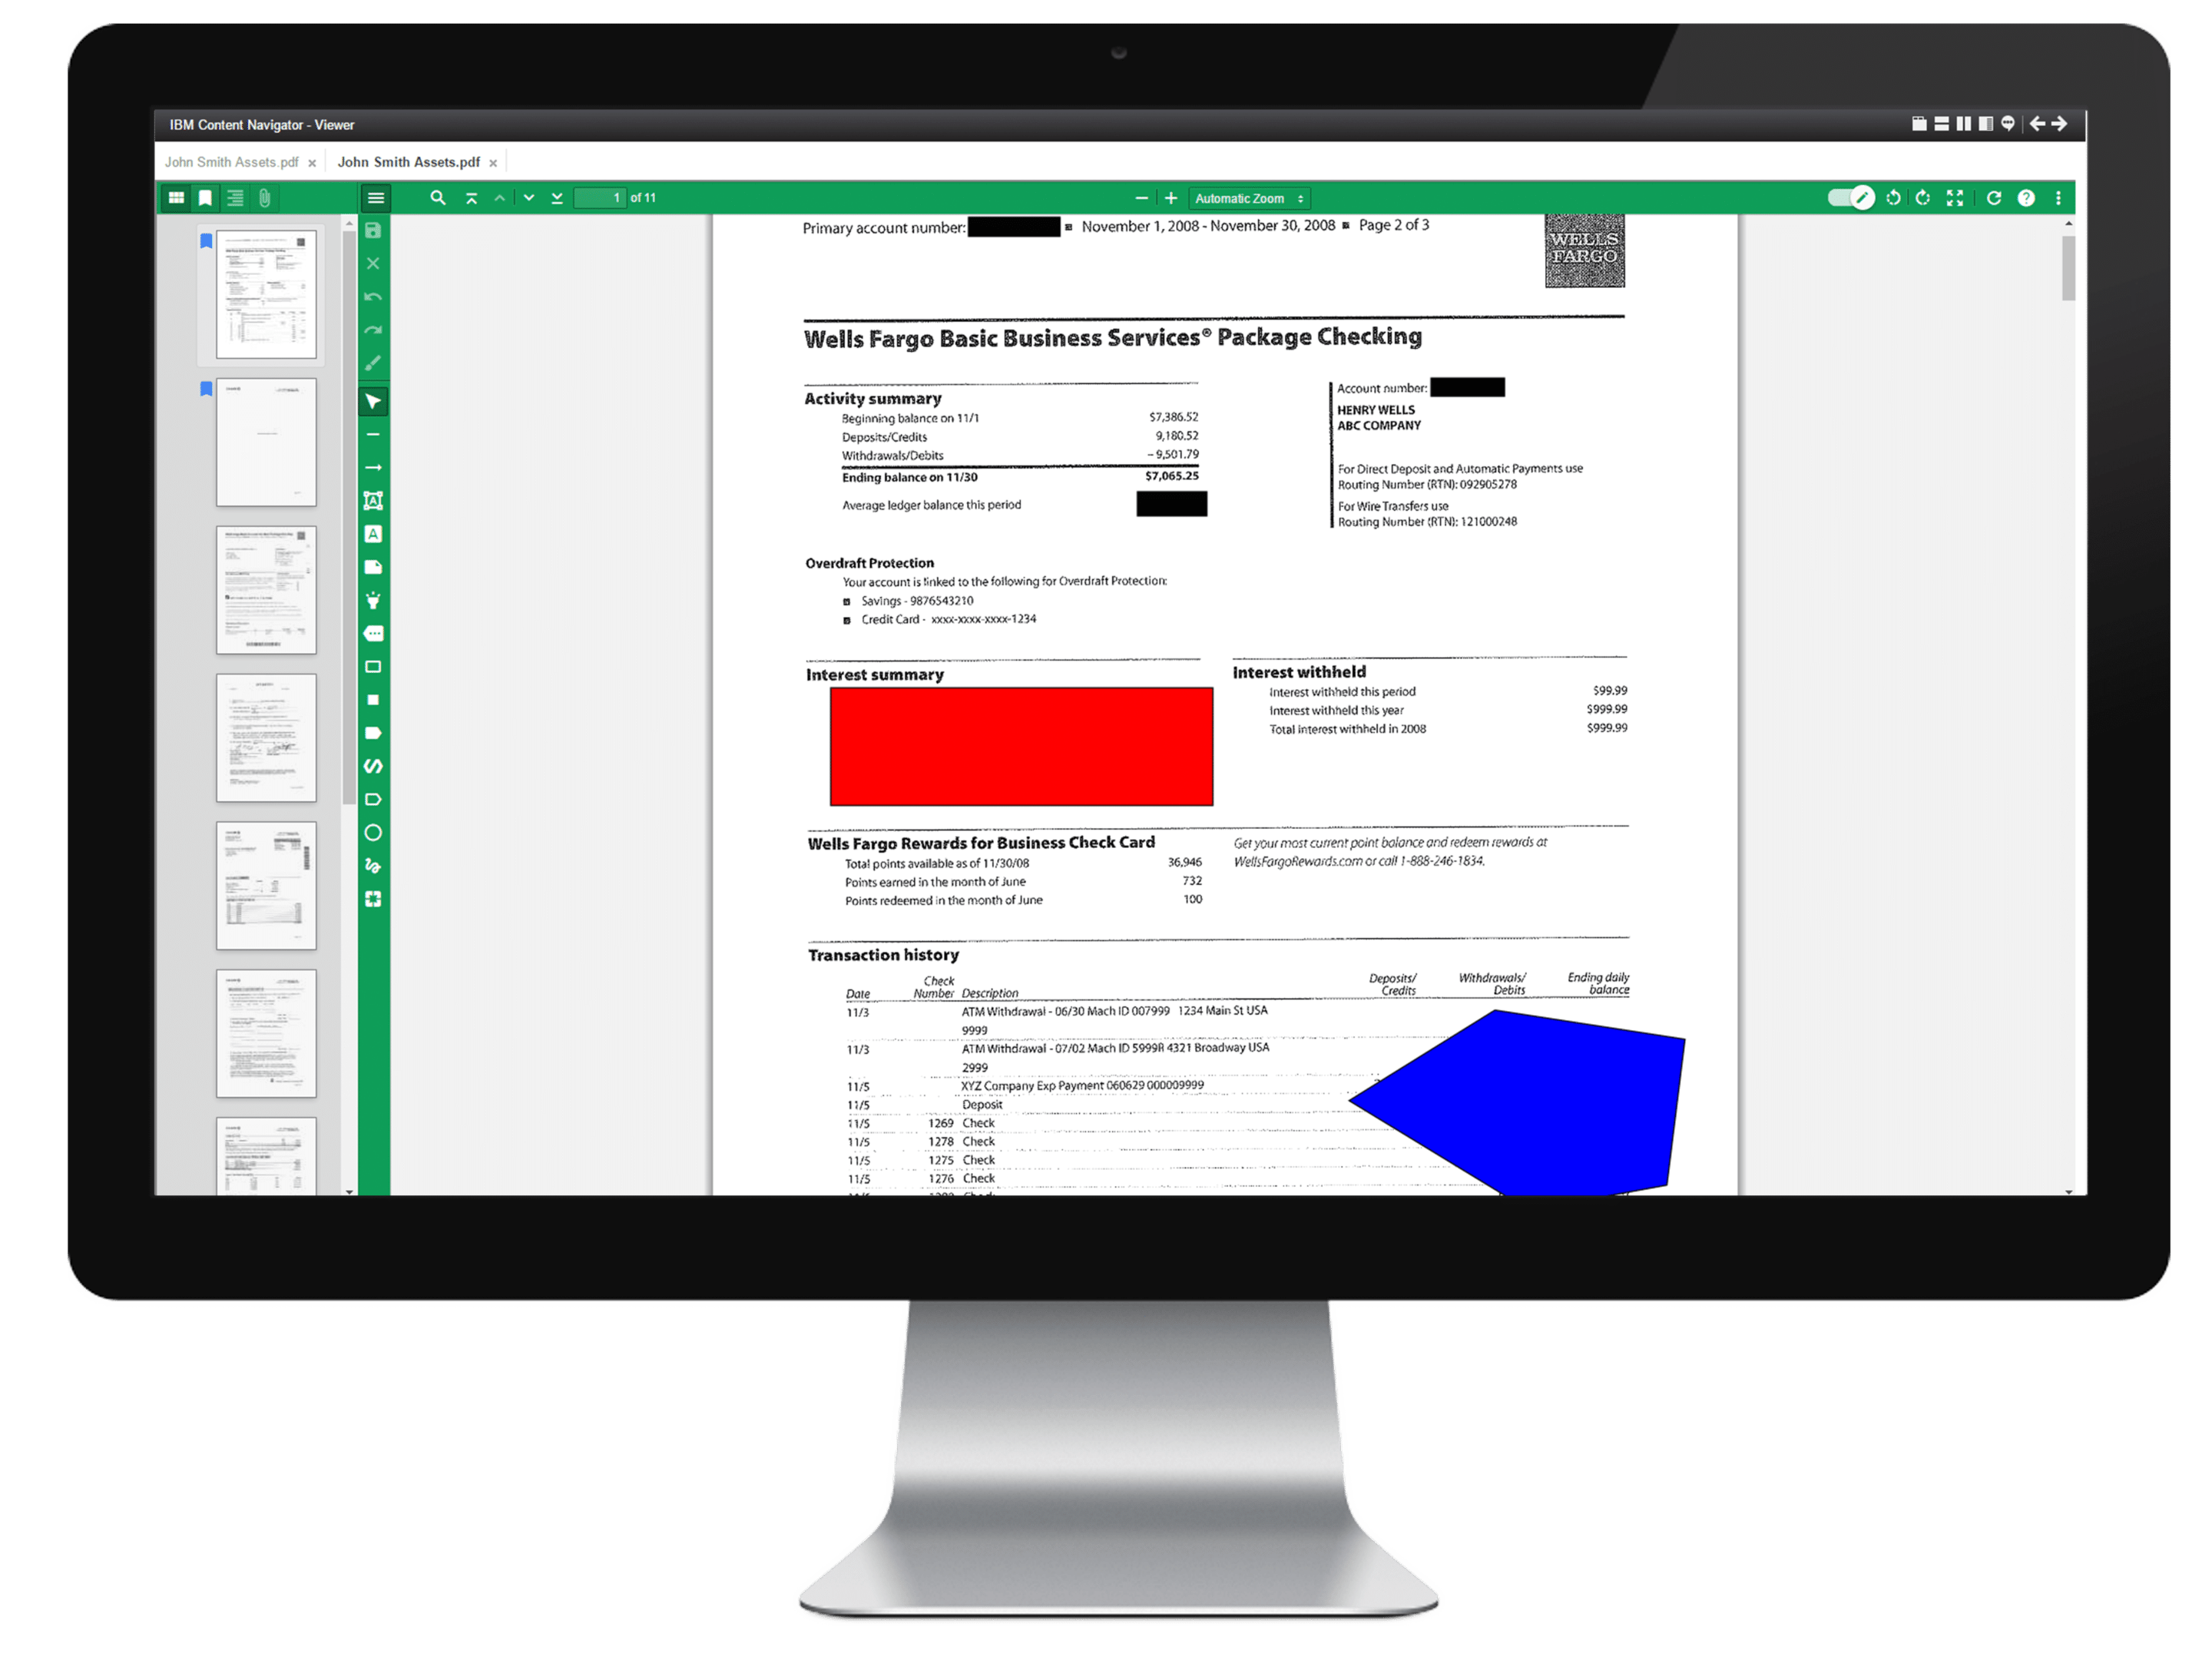 Role based redactions for IBM